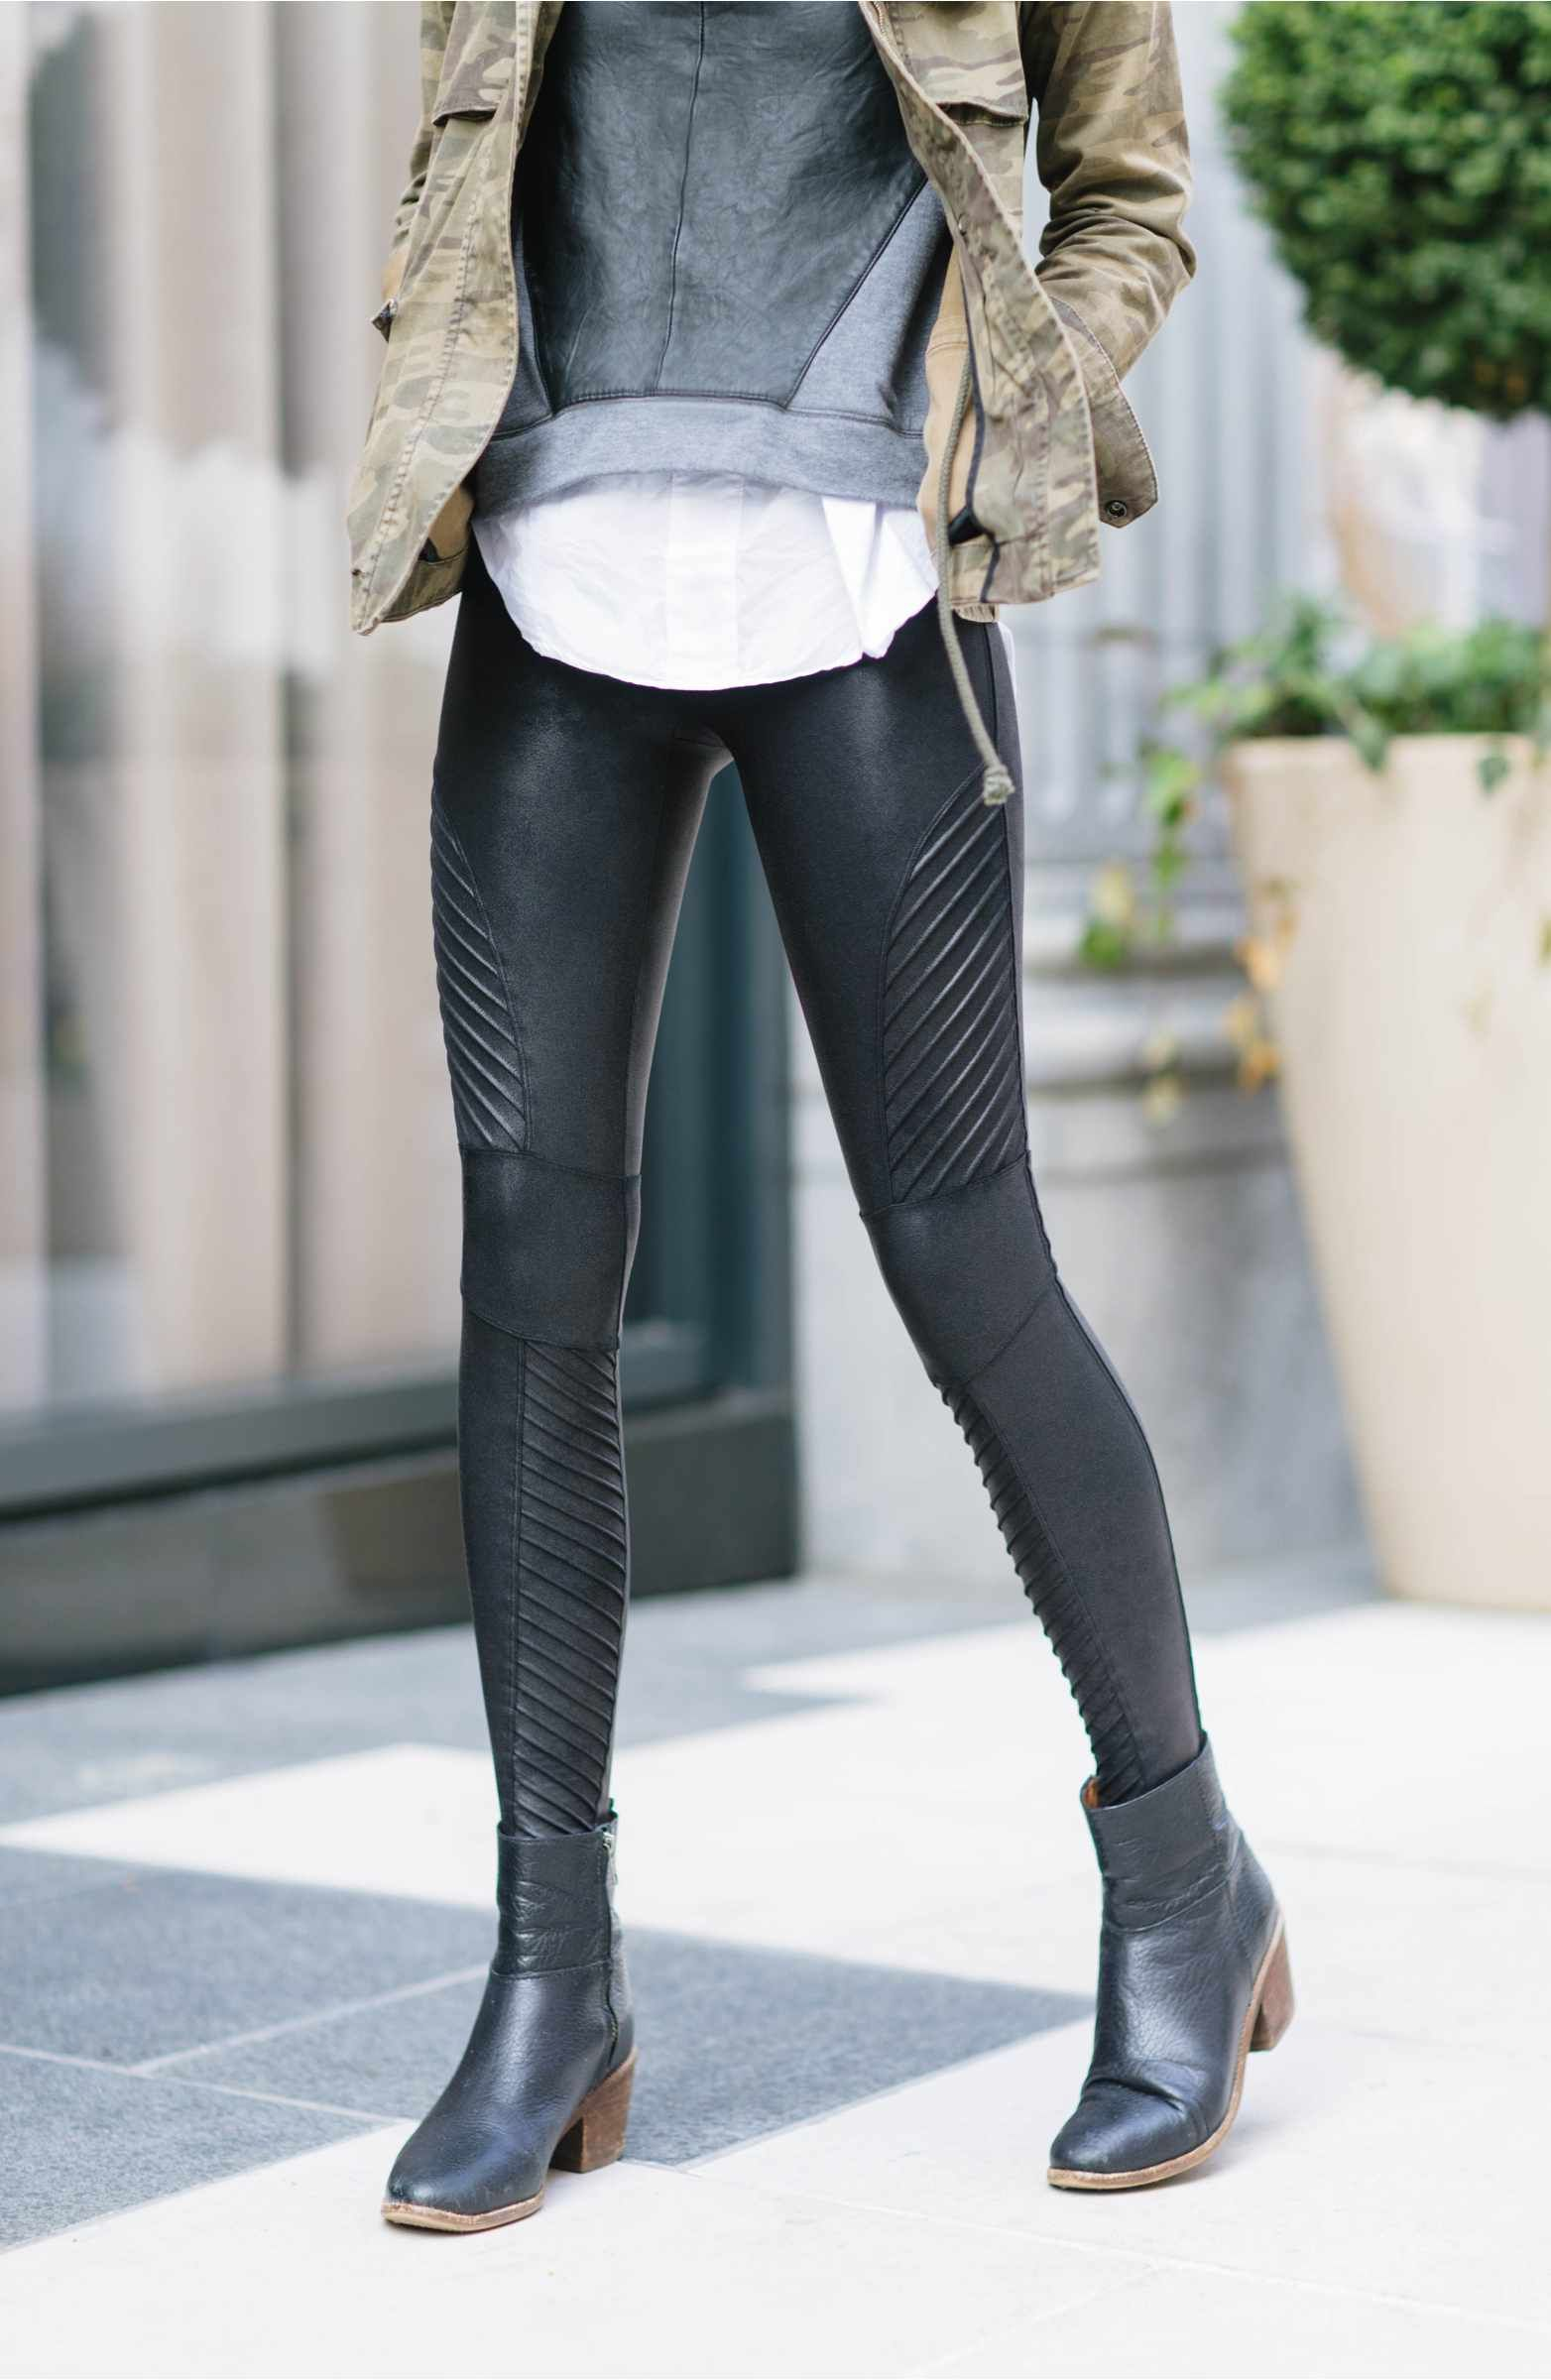 d9662e7ab Main Image - SPANX Faux Leather Moto Leggings